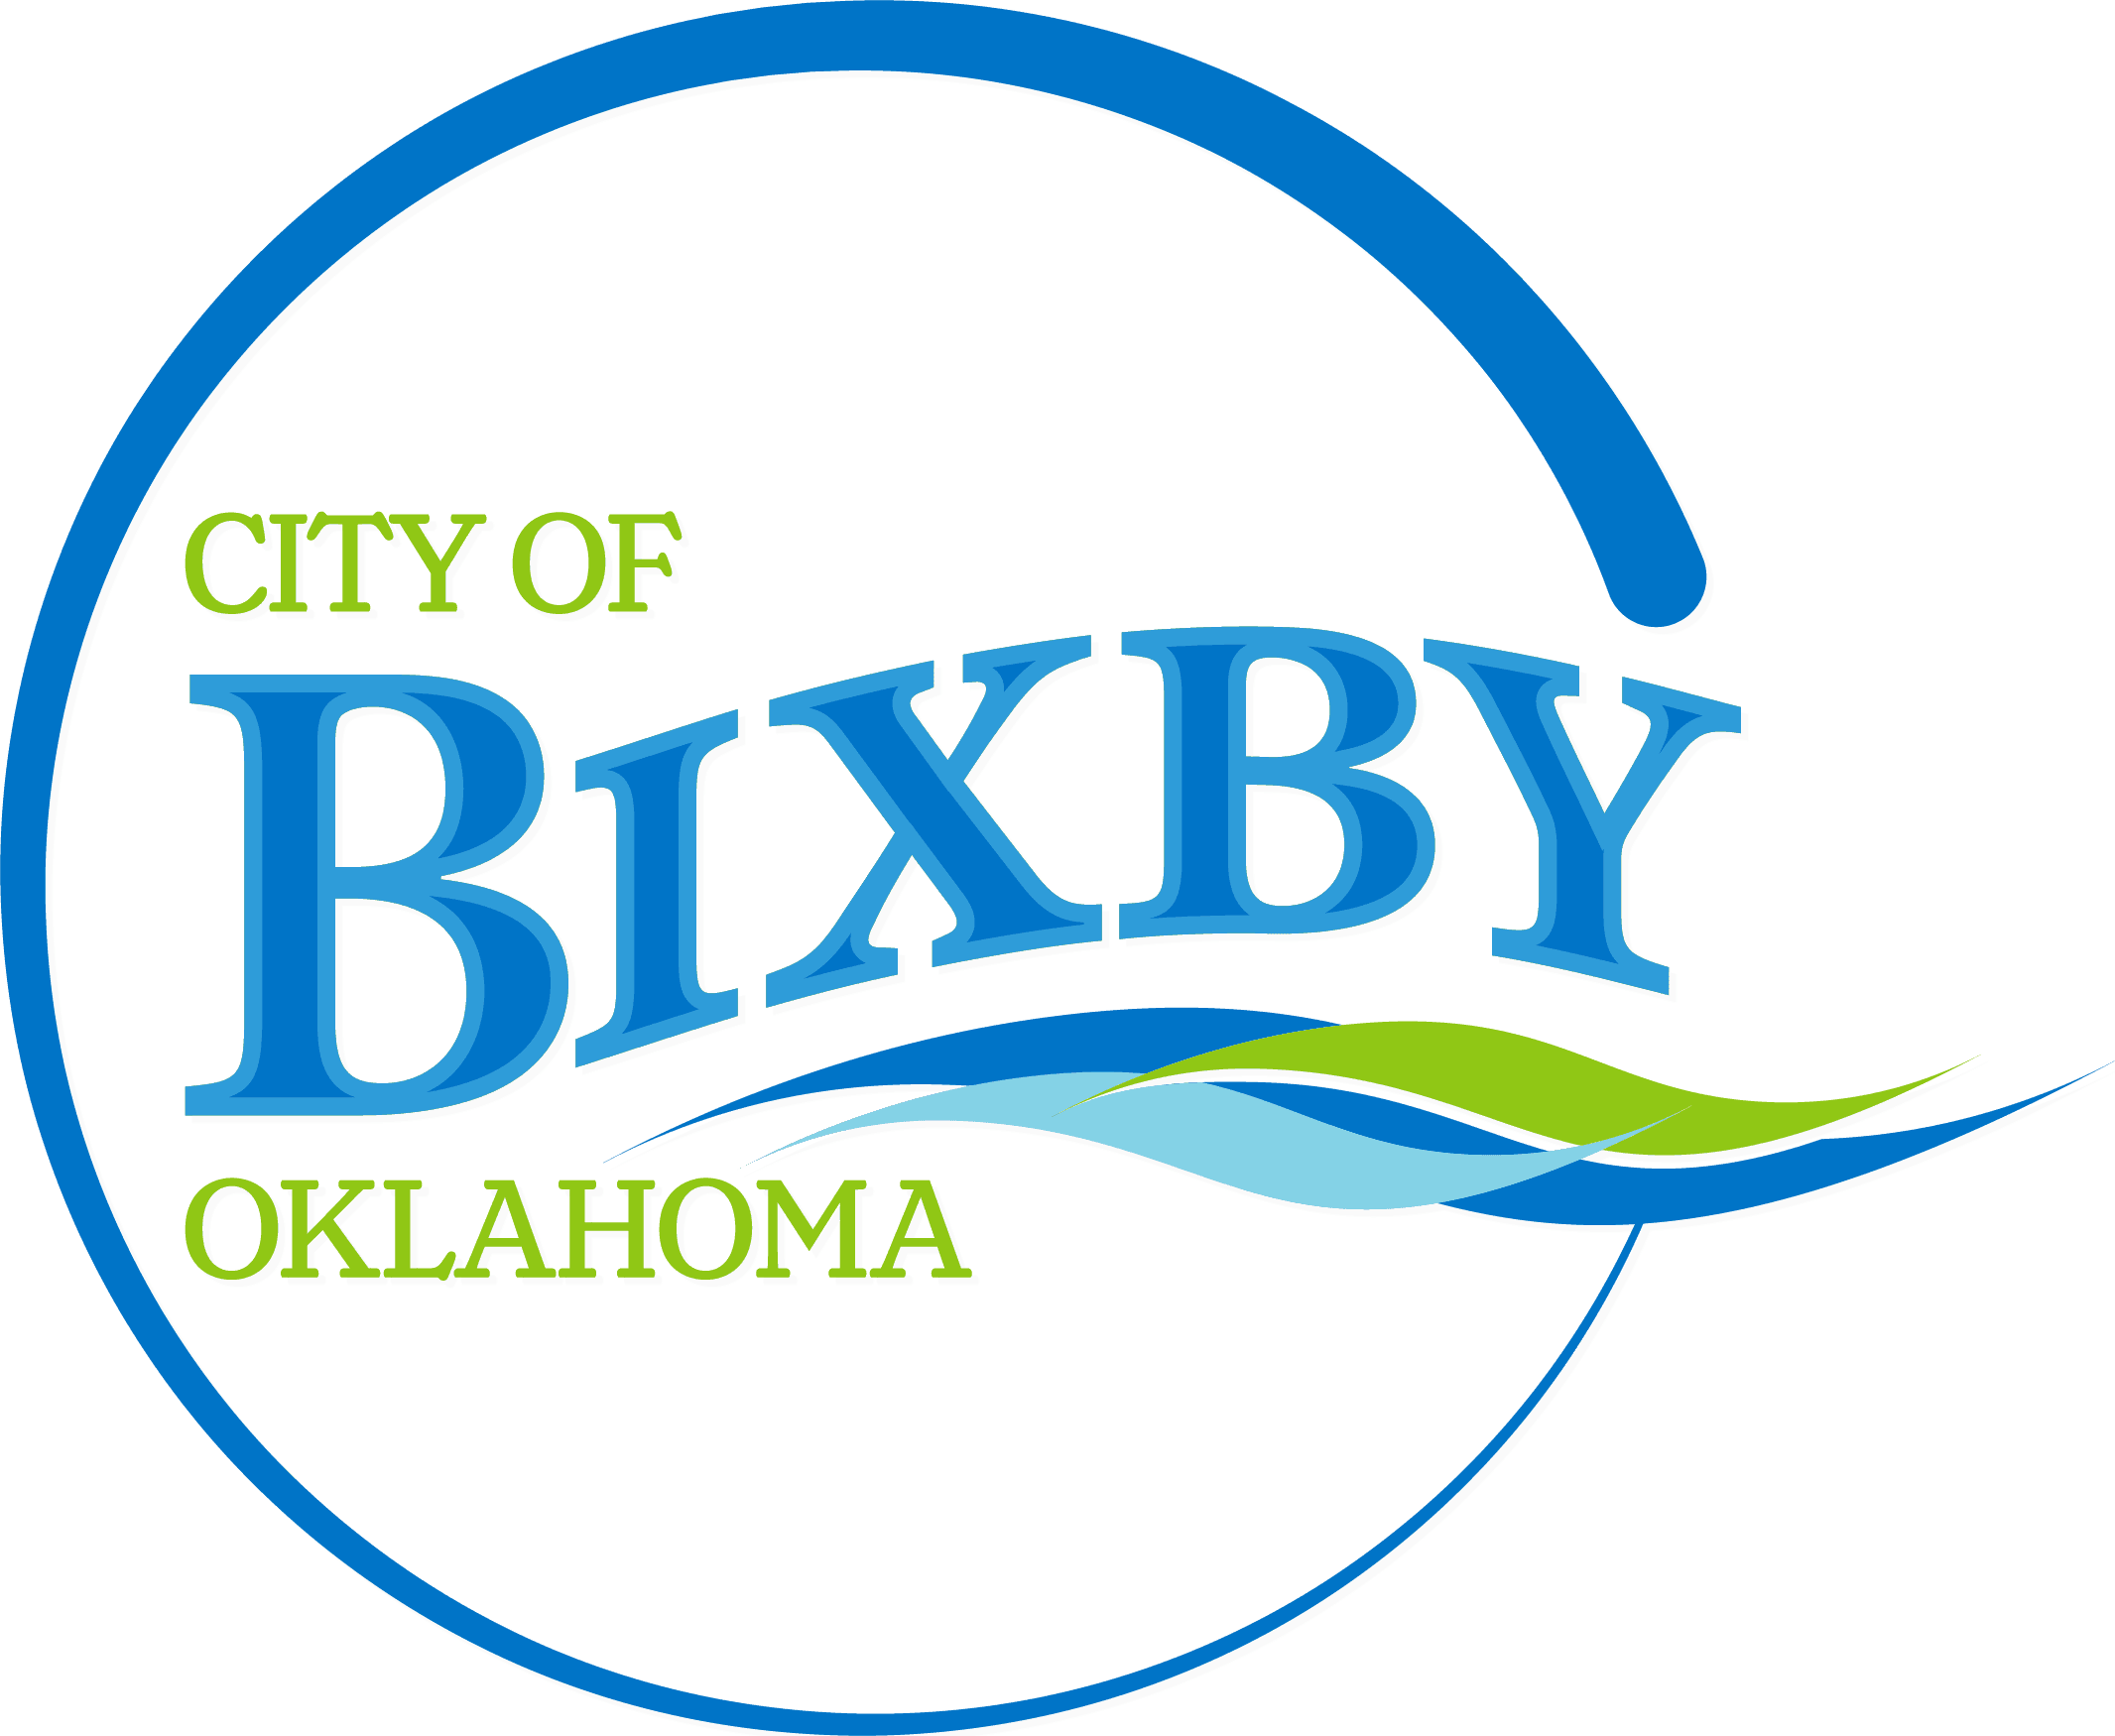 Bixby OK City Logo internal link to City home page